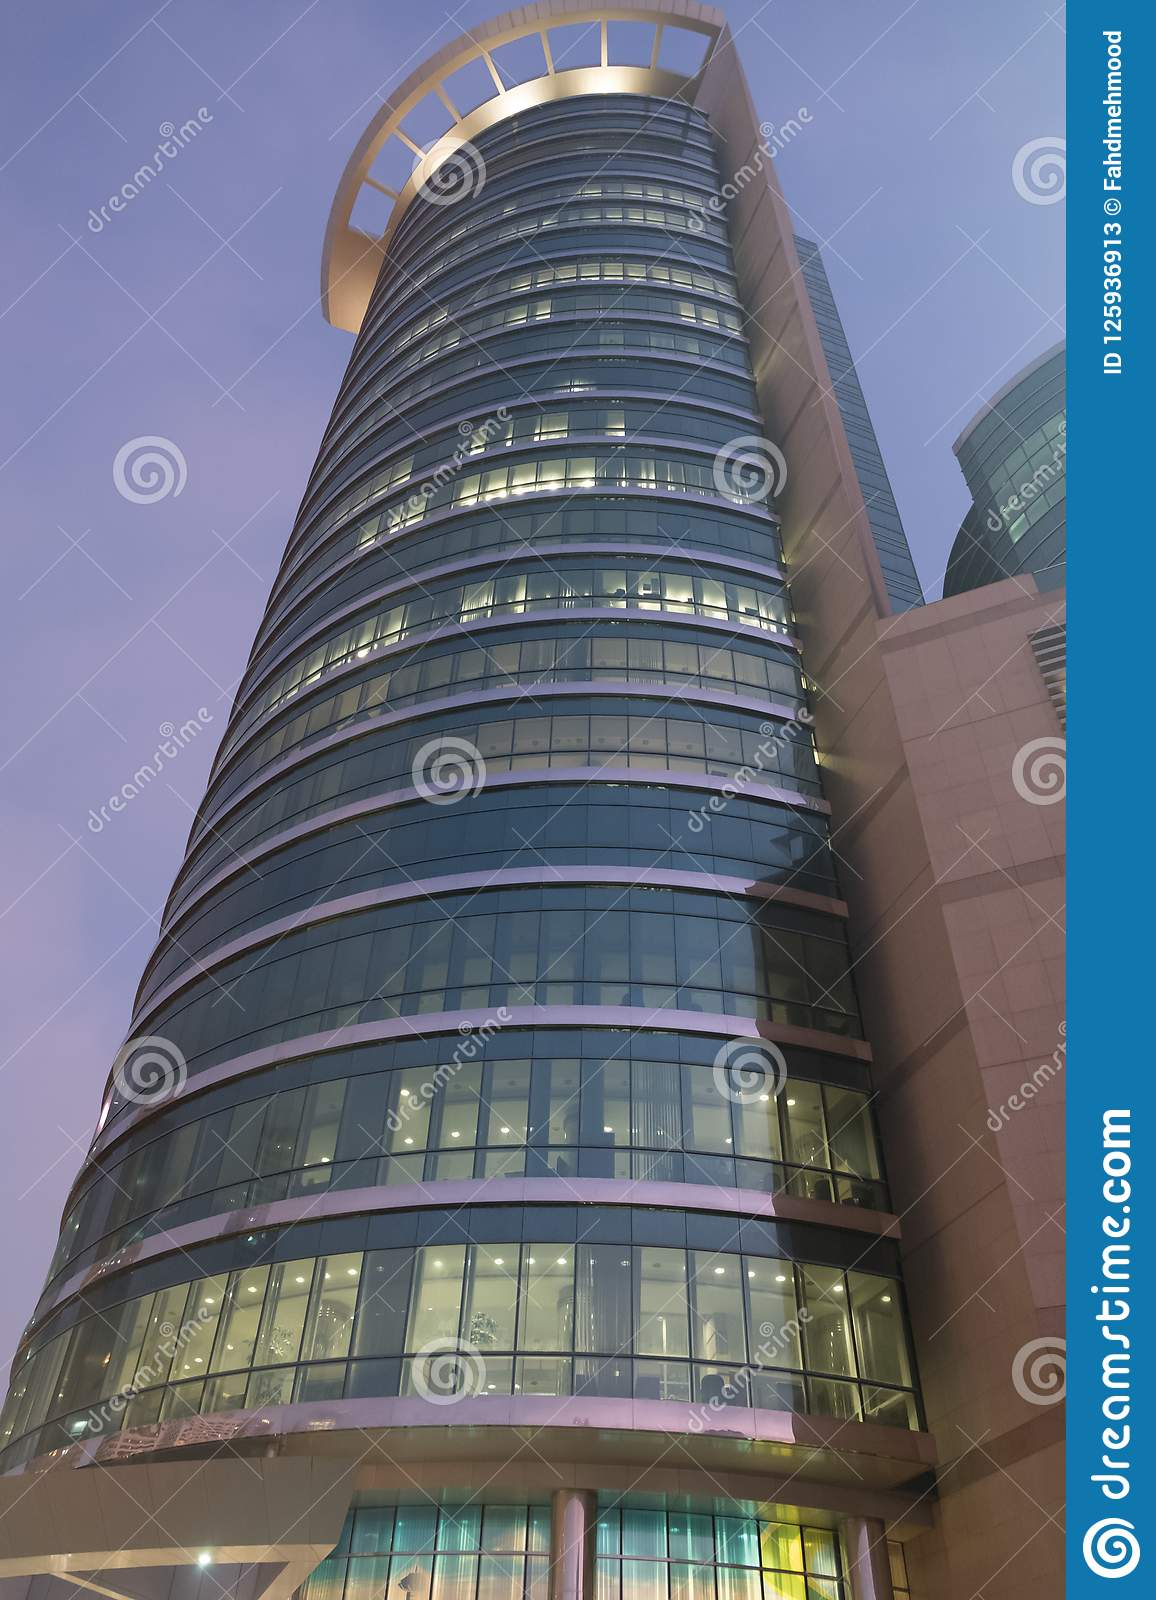 Etisalat Headoffice Building Abu Dhabi Editorial Stock Photo - Image